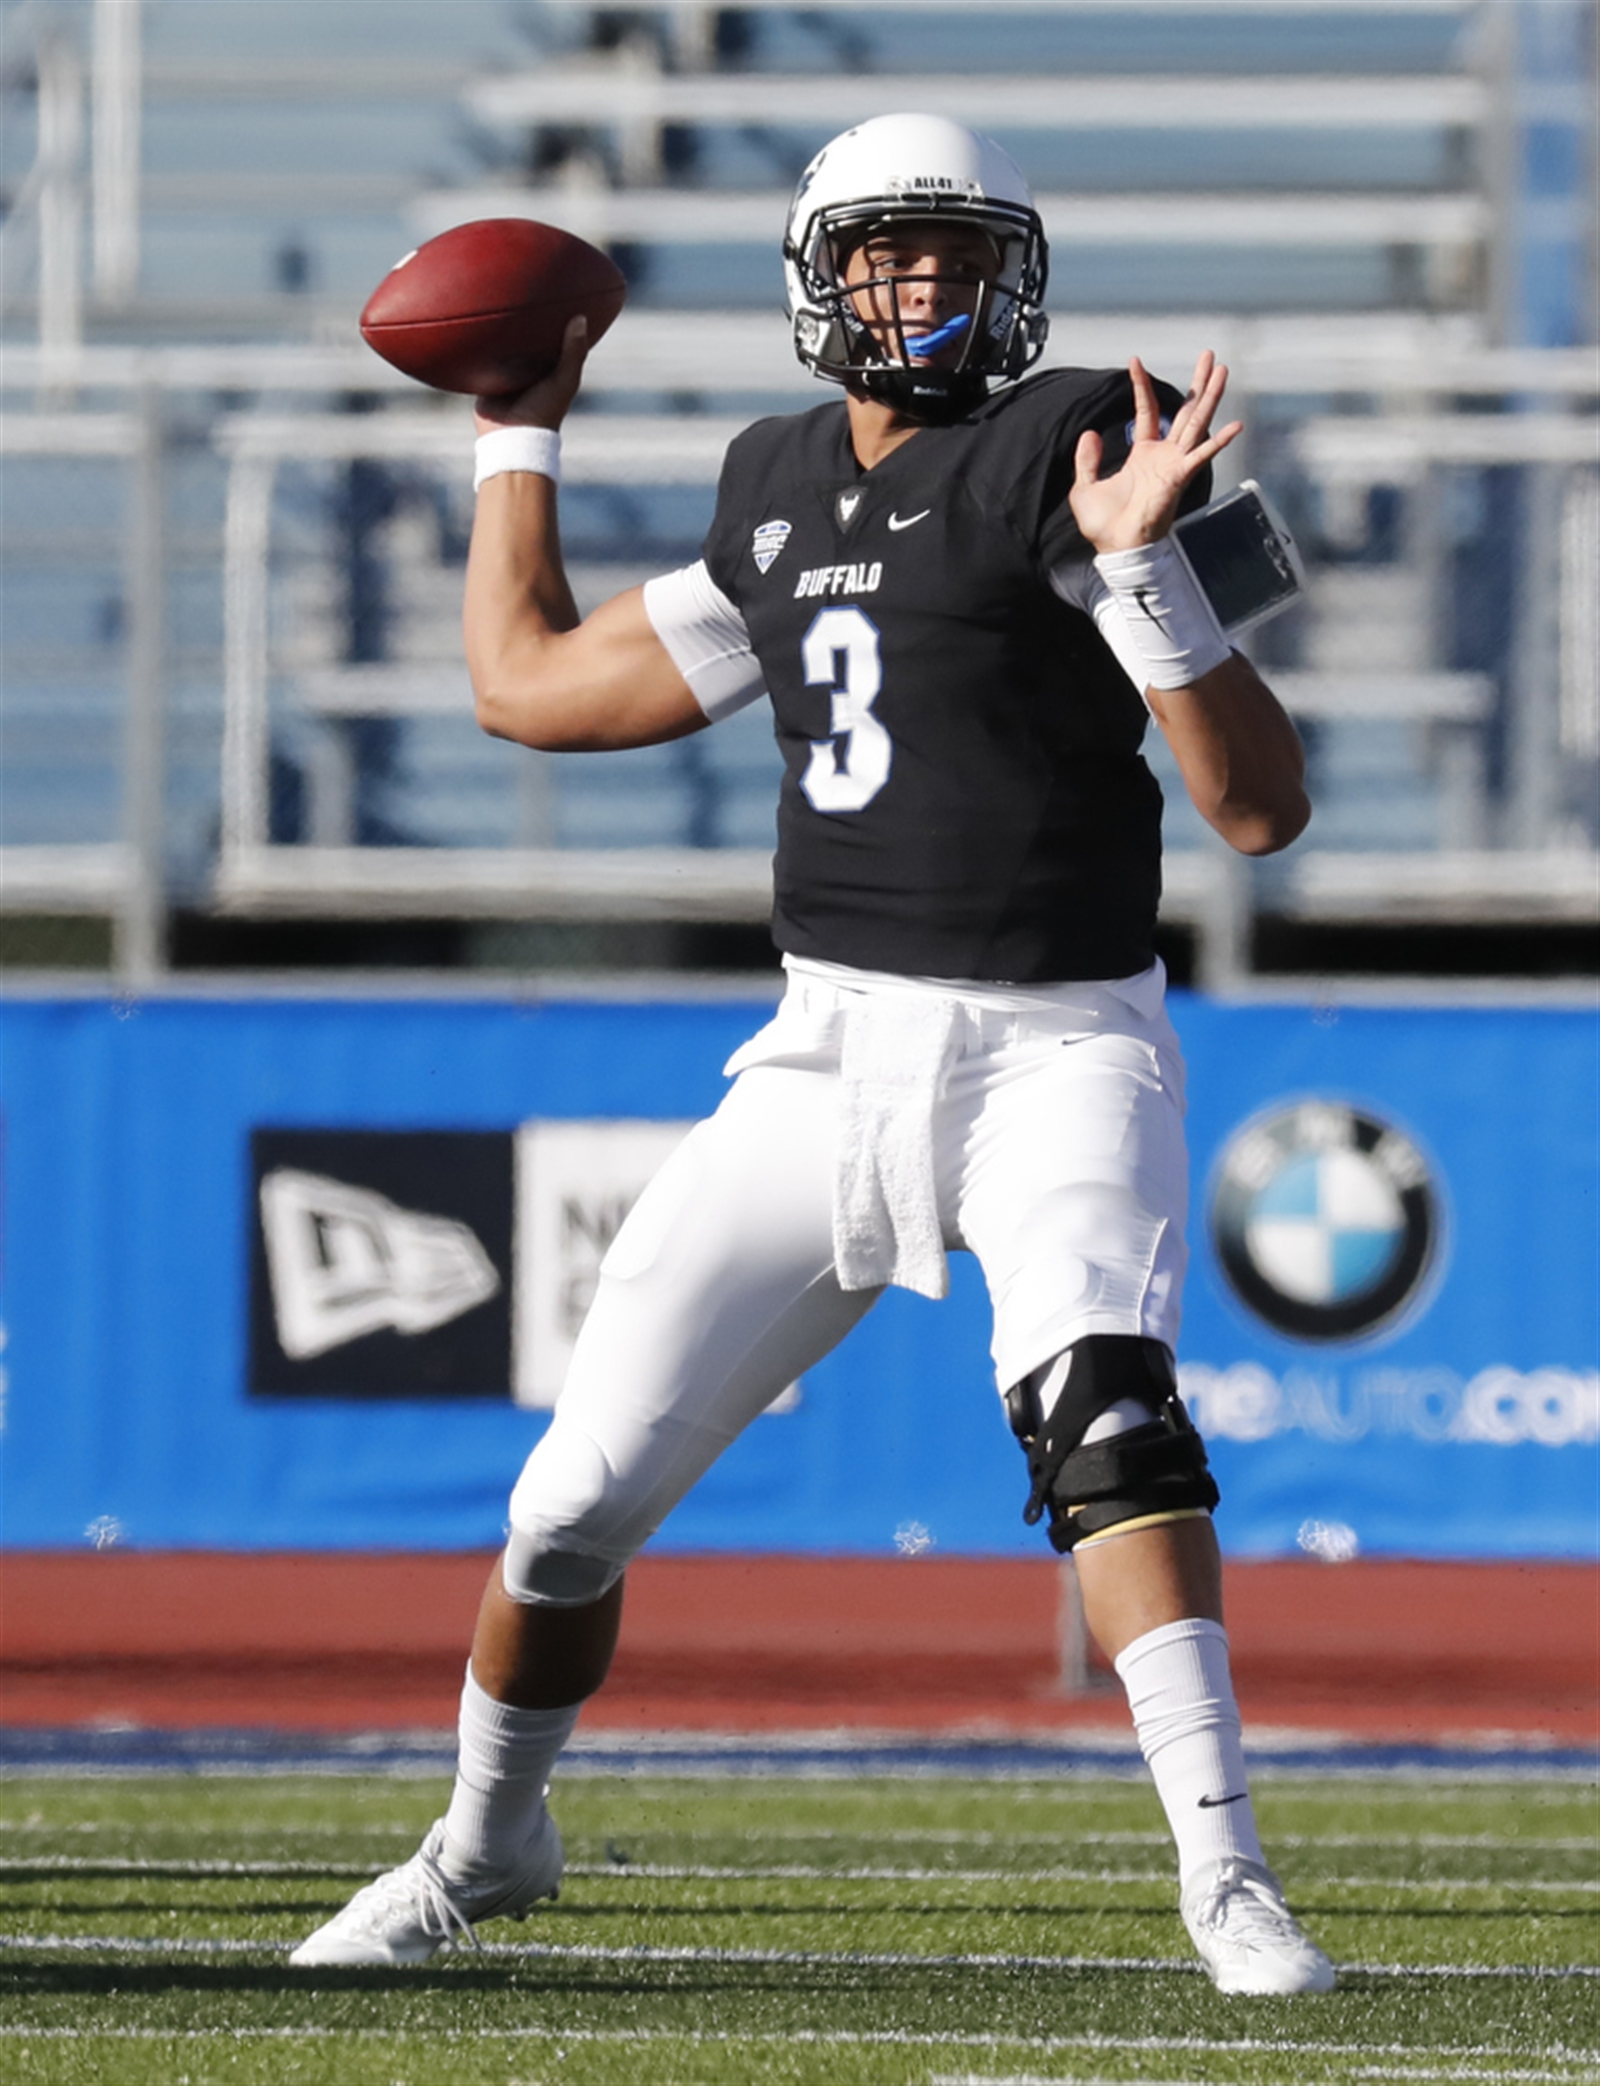 University at Buffalo quarterback Tyree Jackson throws against Ball State during first half action on Saturday,Oct. 15, 2016.(Harry Scull Jr./Buffalo News)